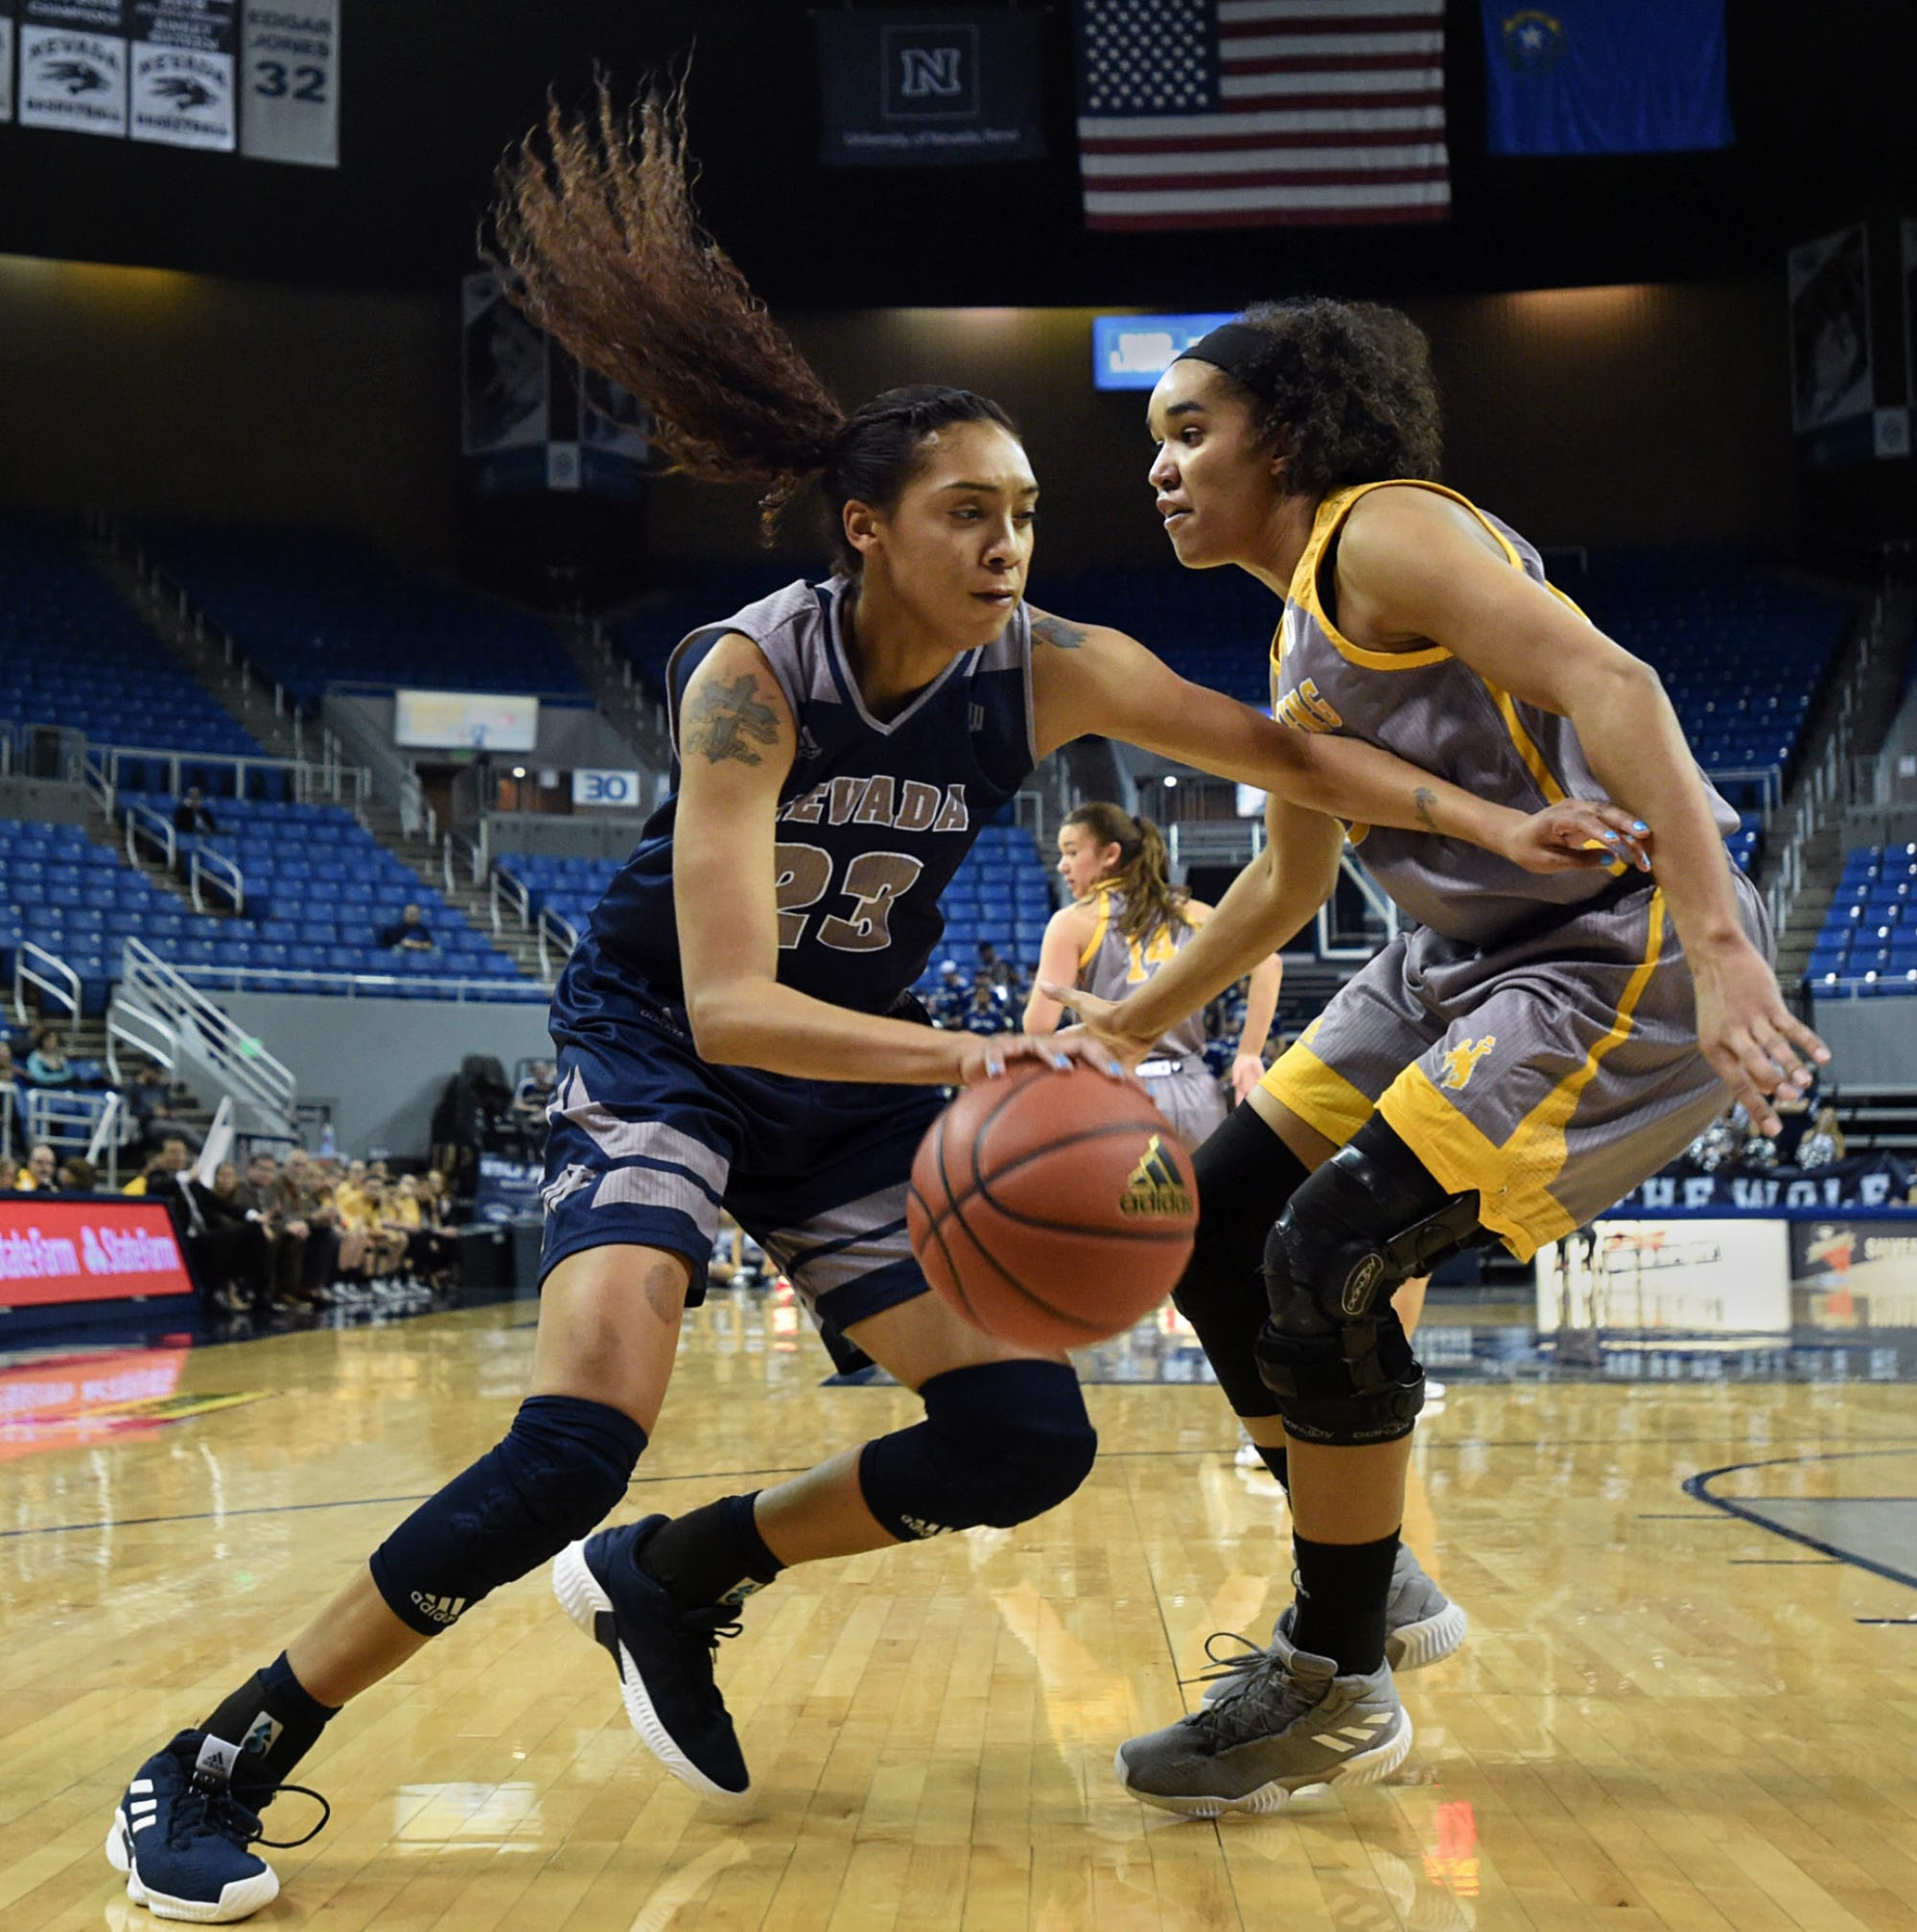 Nevada loses to top-seed Boise State in women's tournament